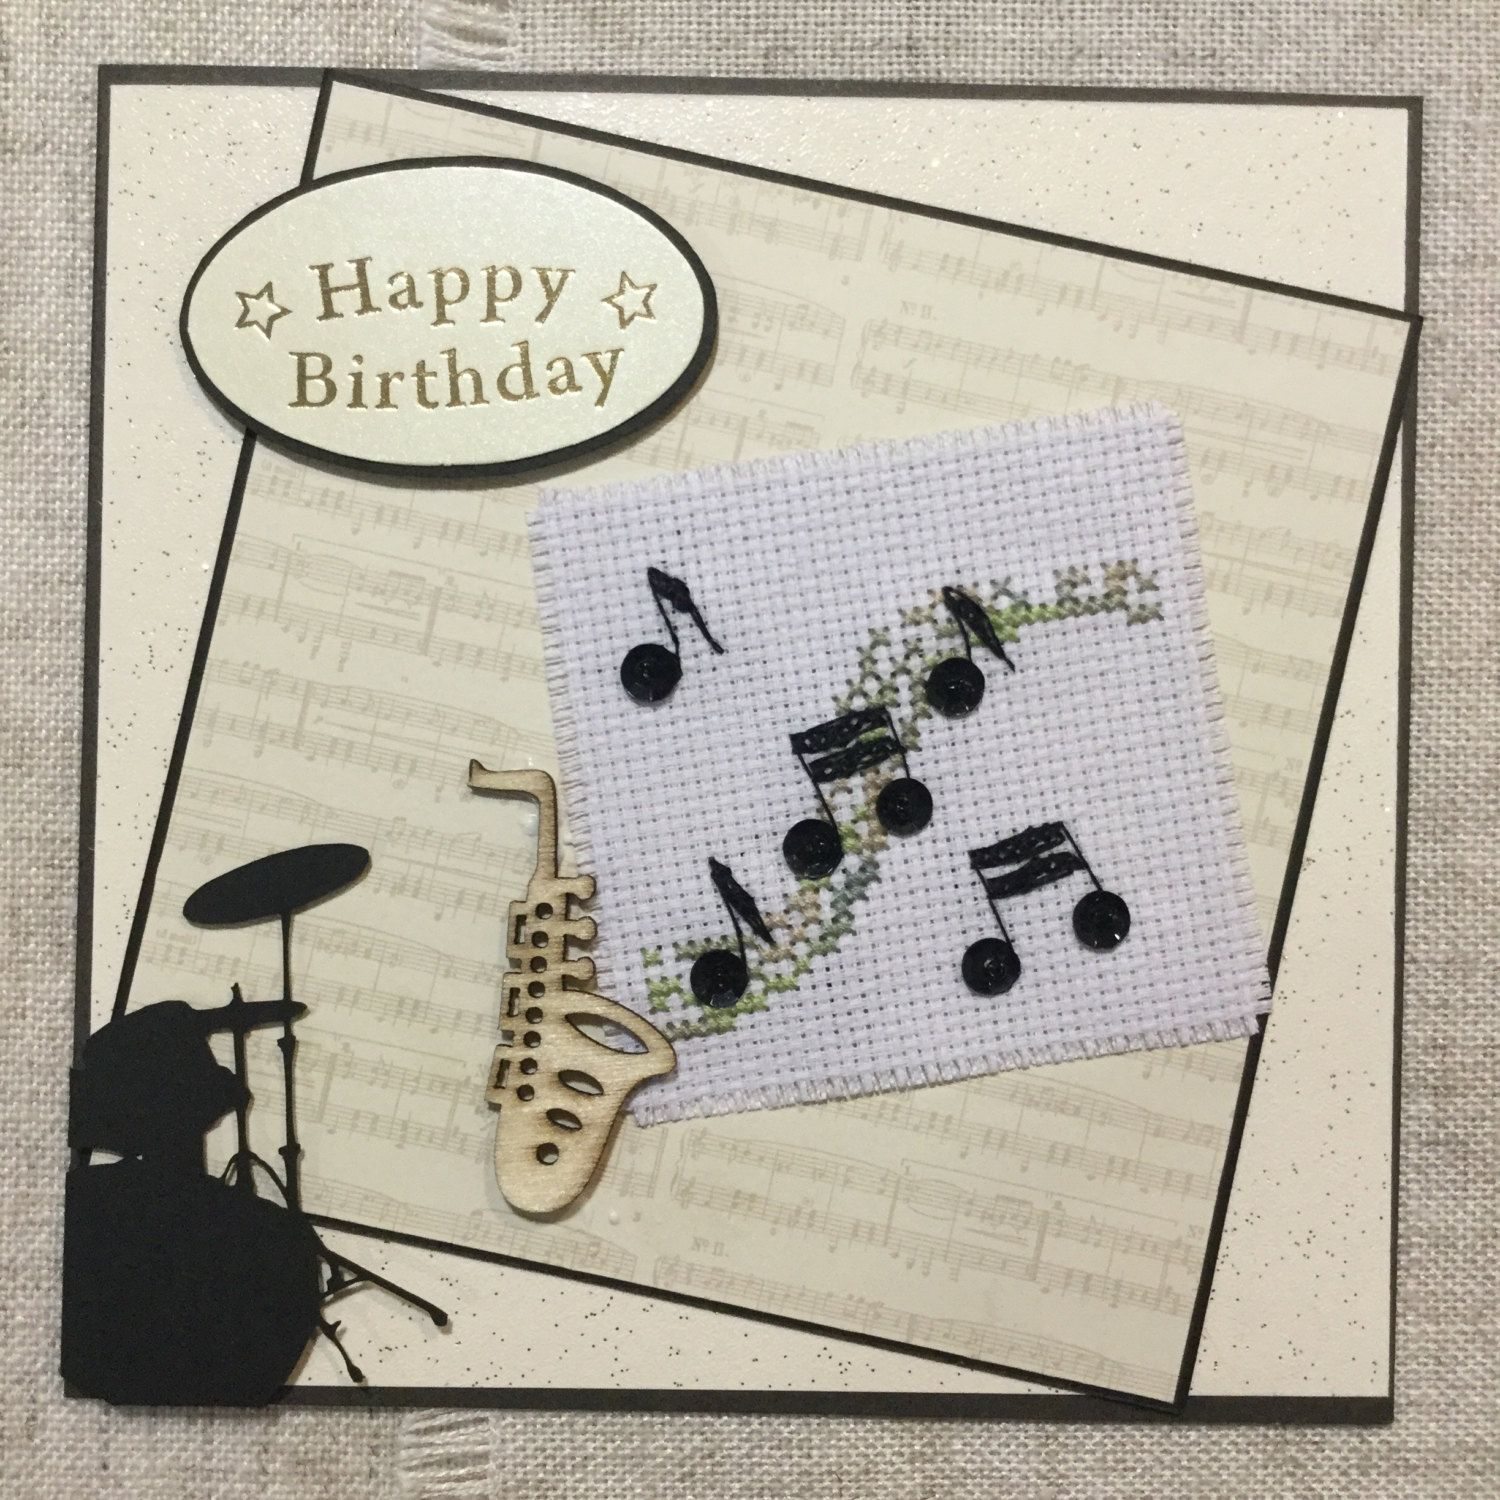 Musical Birthday Card Handmade Cards For Him Cross Stitch Music Lovers By BunnybearDesignsUK On Etsy